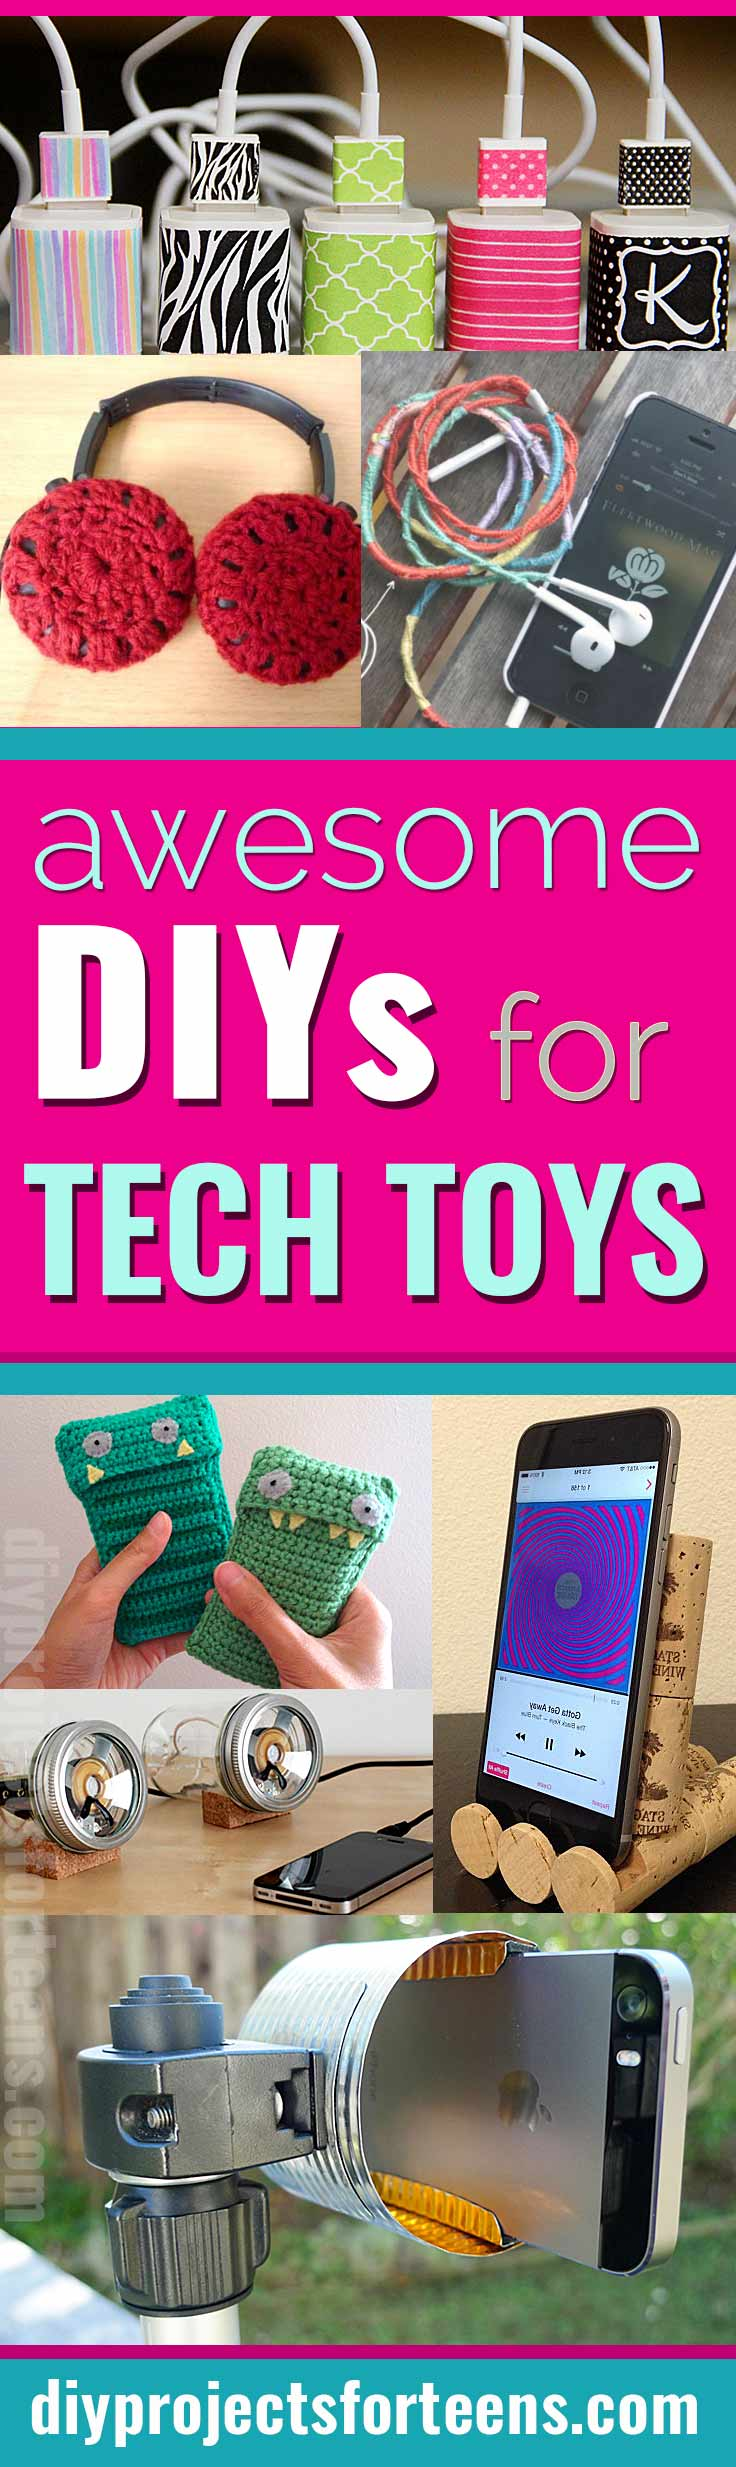 Cool DIY Ideas for Your iPhone iPad Tablets & Phones | Fun Projects for Chargers, Cases and Headphones - DIY Gadgets and iphone gear DIY